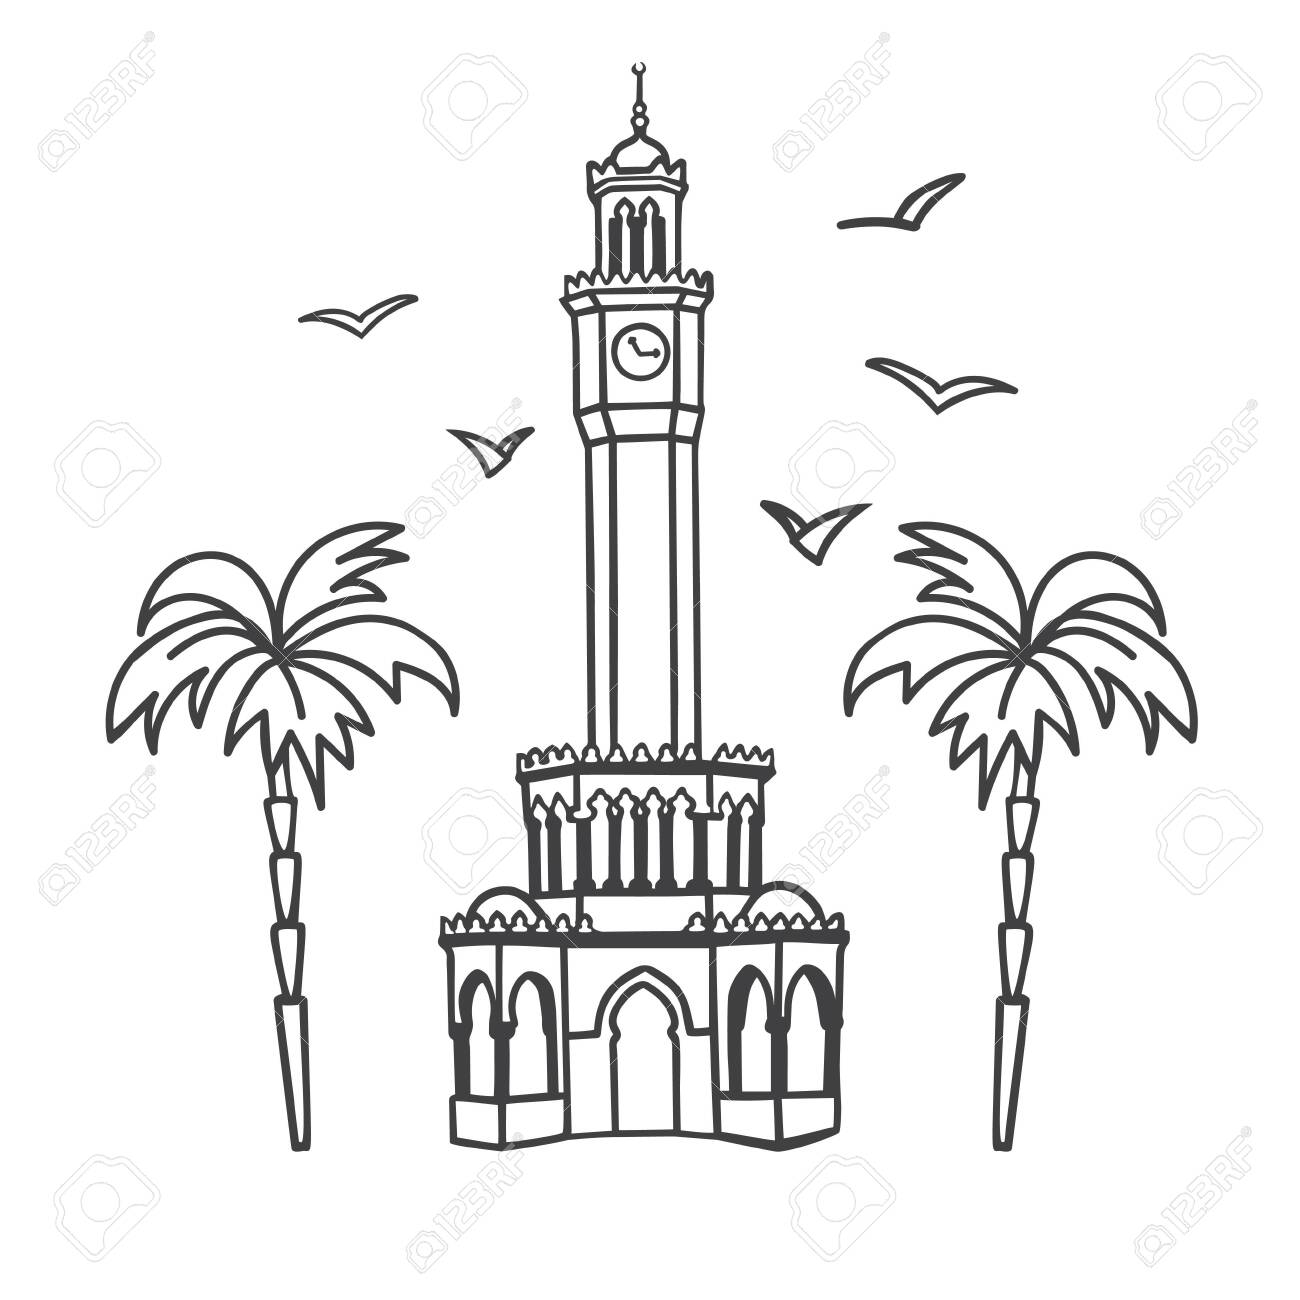 Vector Illustration The Clock Tower In Izmir Turkey Famous Royalty Free Cliparts Vectors And Stock Illustration Image 139486730